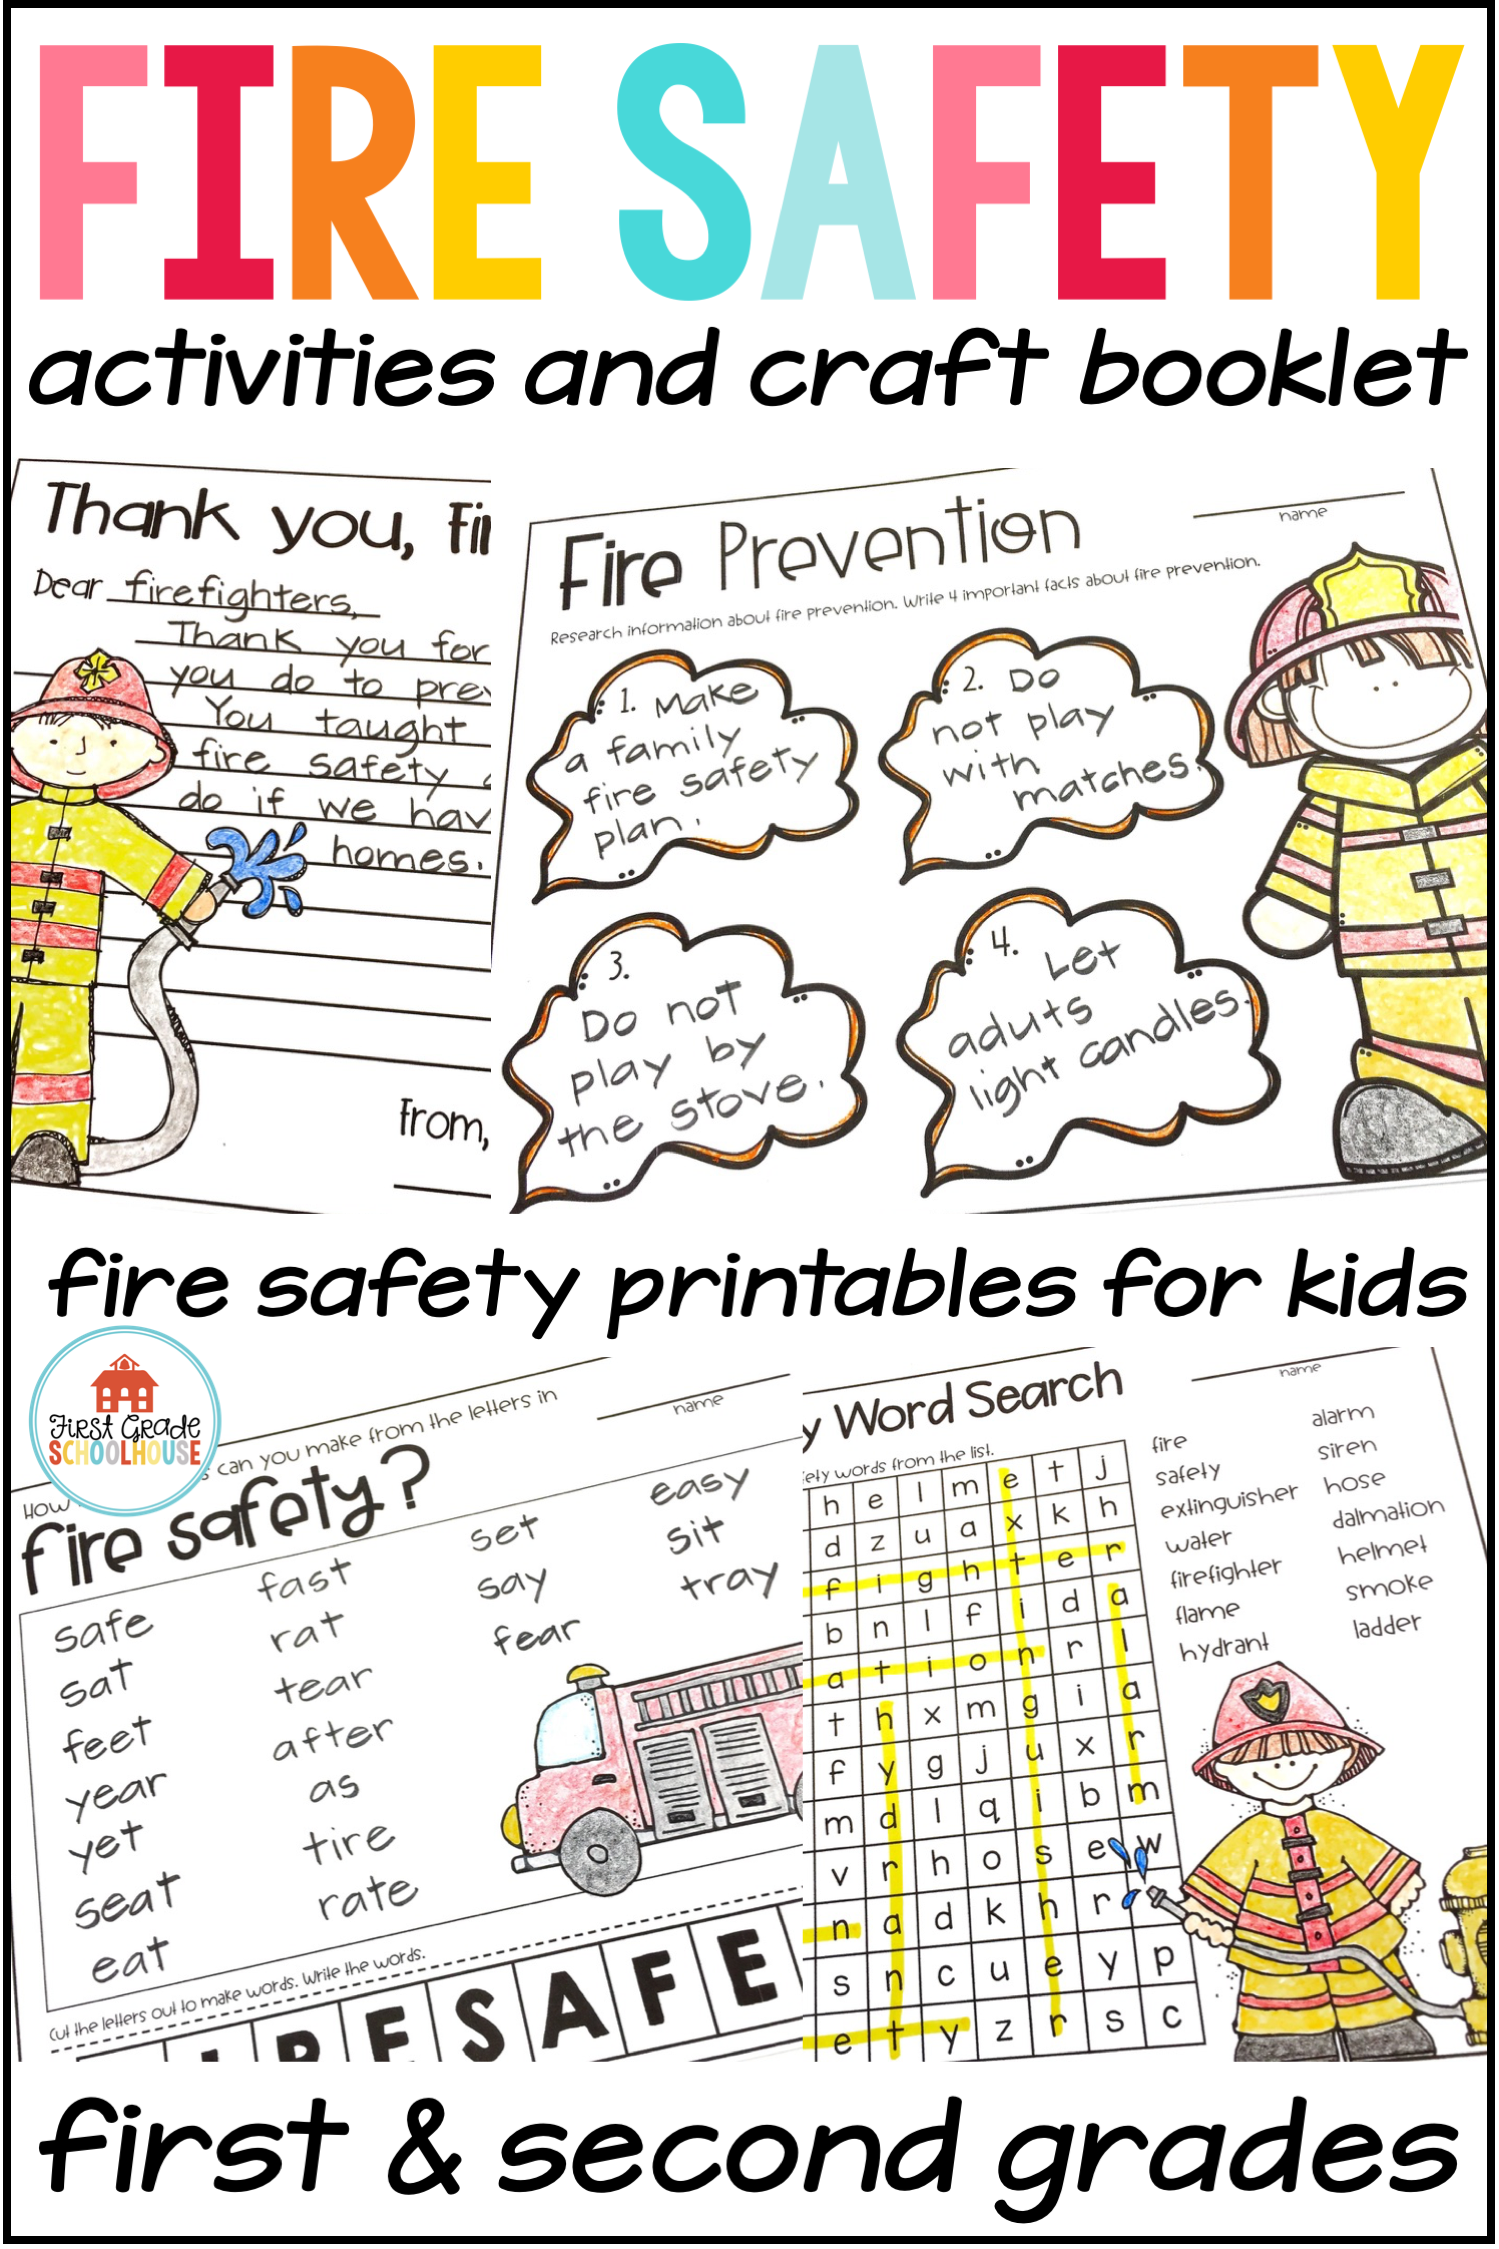 Fire Safety Activities And Craft Booklet